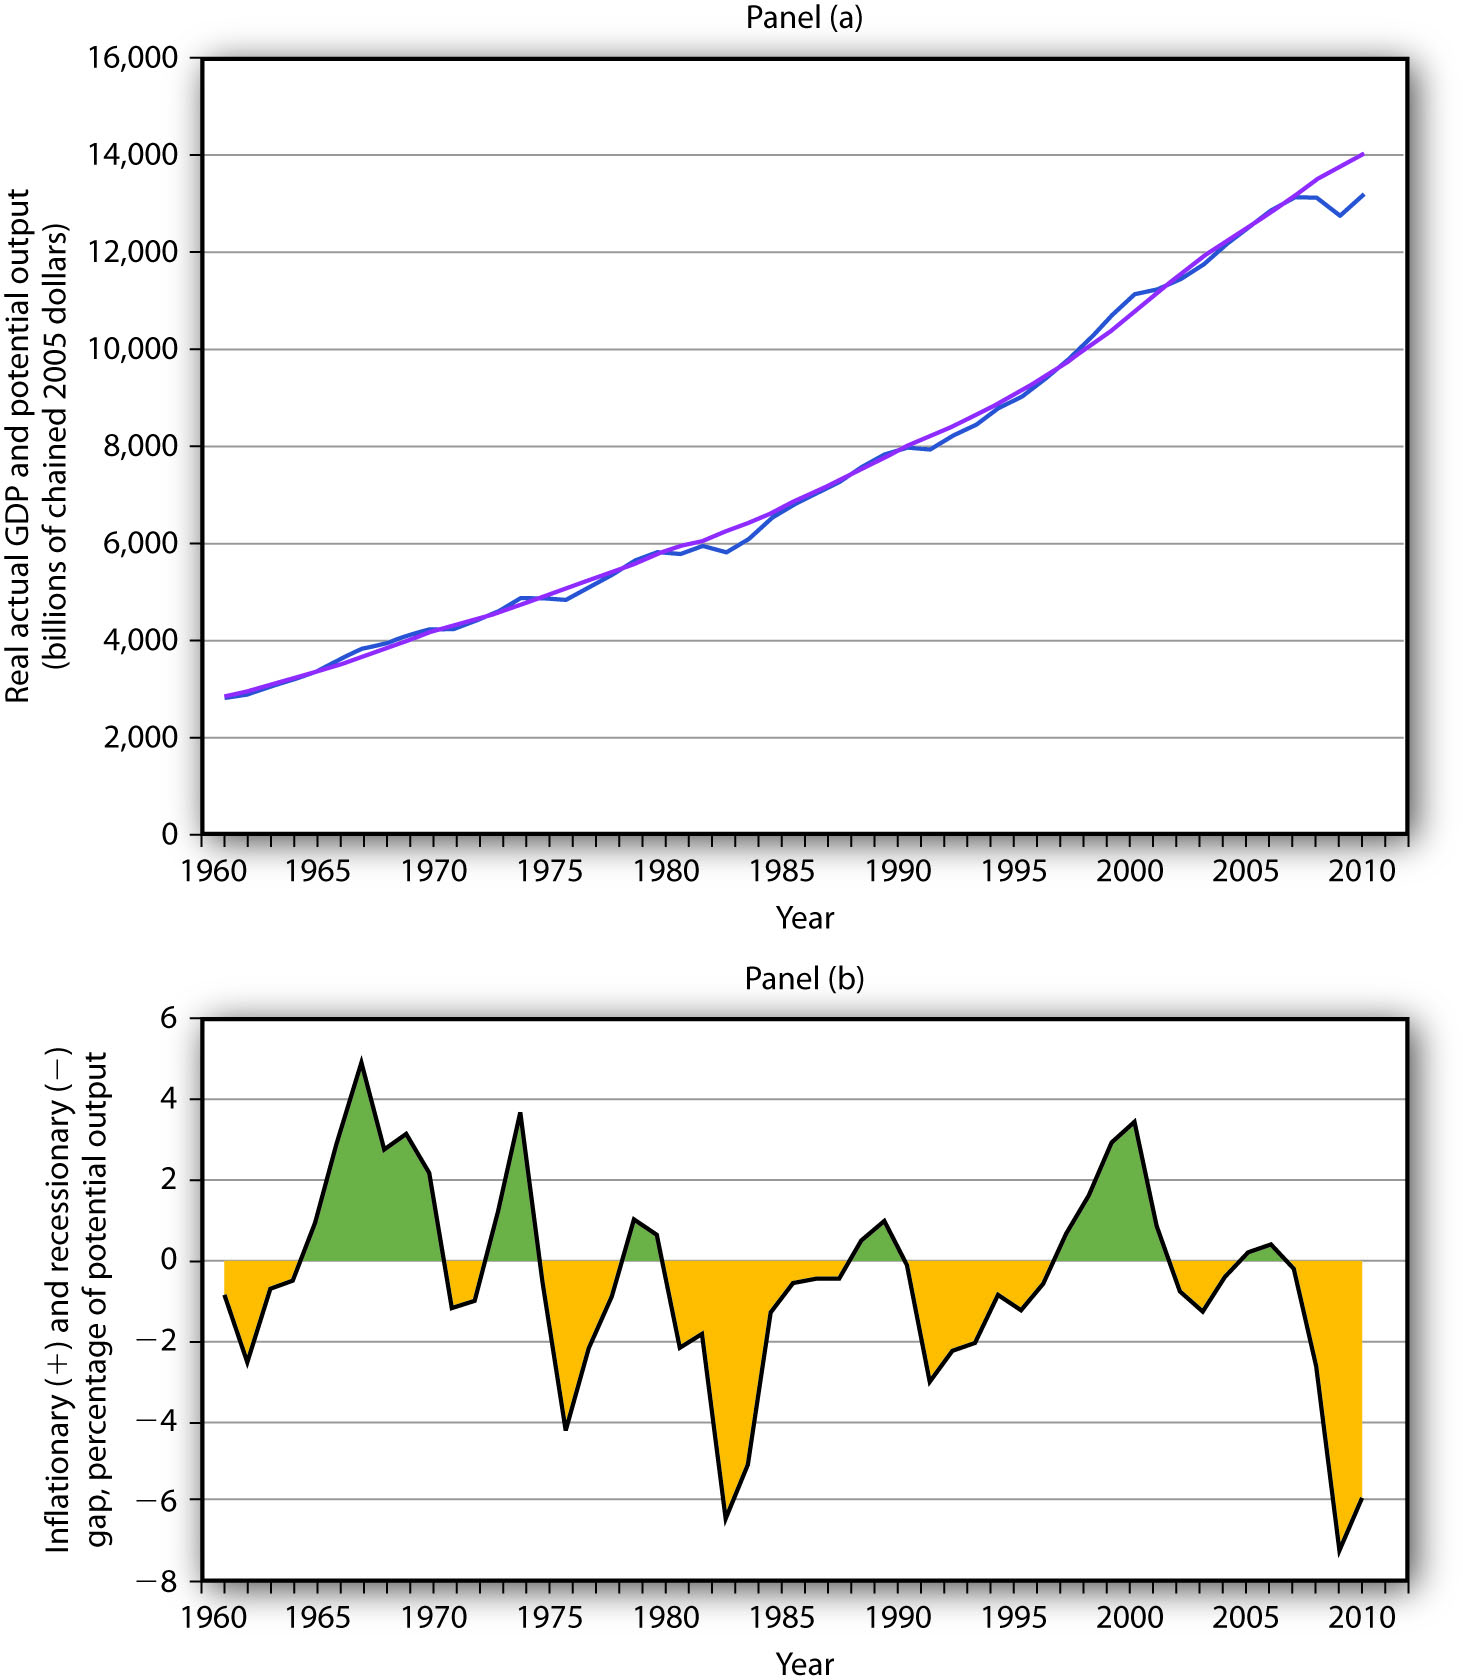 Real GDP and Potential Output. Panel (a) shows potential output (the blue line) and actual real GDP (the purple line) since 1960. Panel (b) shows the gap between potential and actual real GDP expressed as a percentage of potential output. Inflationary gaps are shown in green and recessionary gaps are shown in yellow.